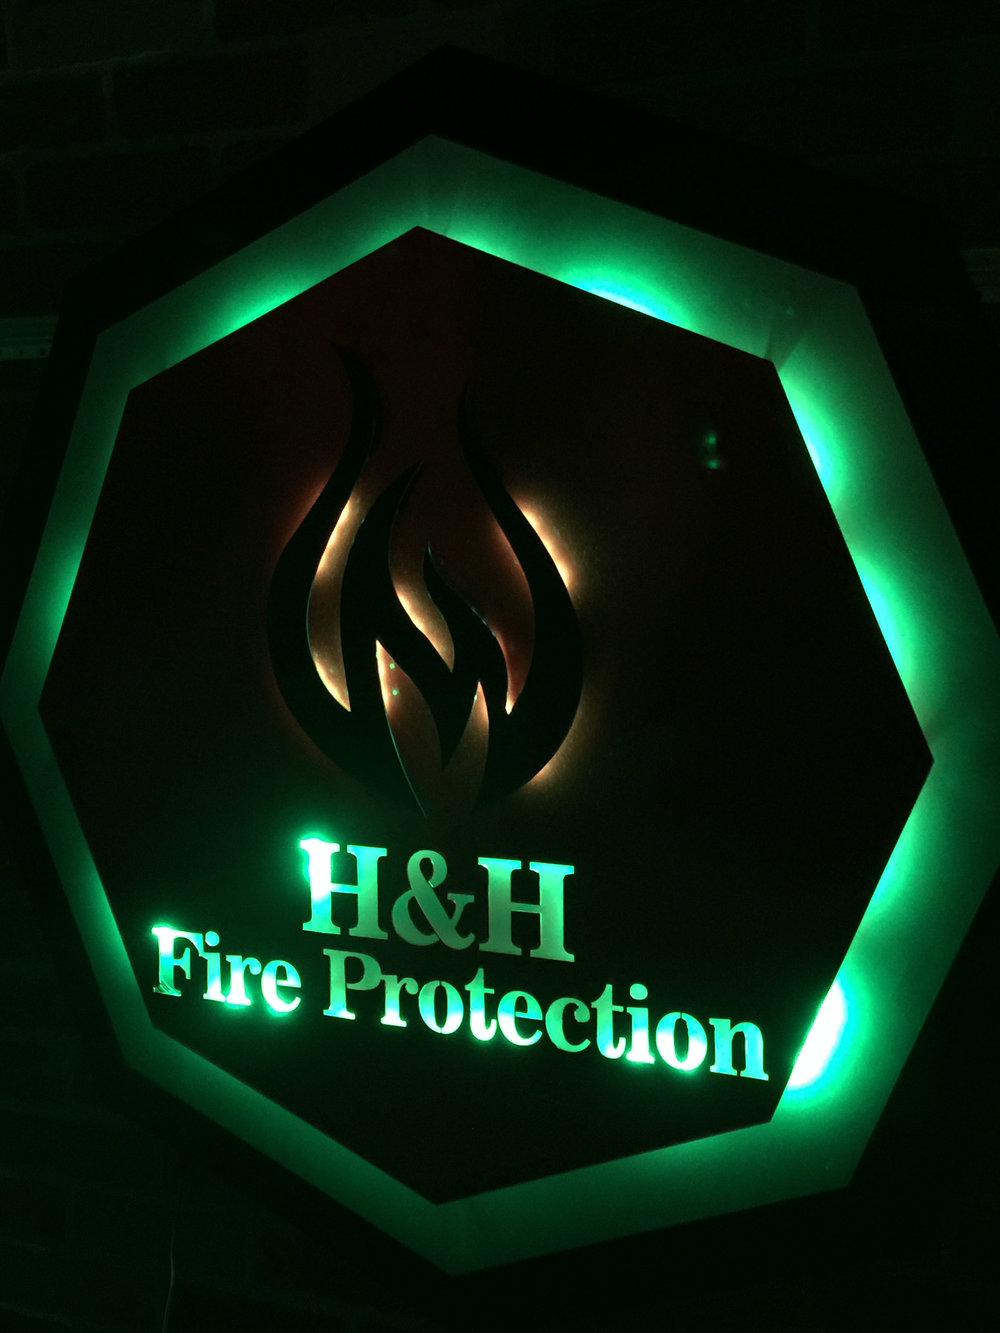 Copy of Custom Metal Lit Signage (27).jpg